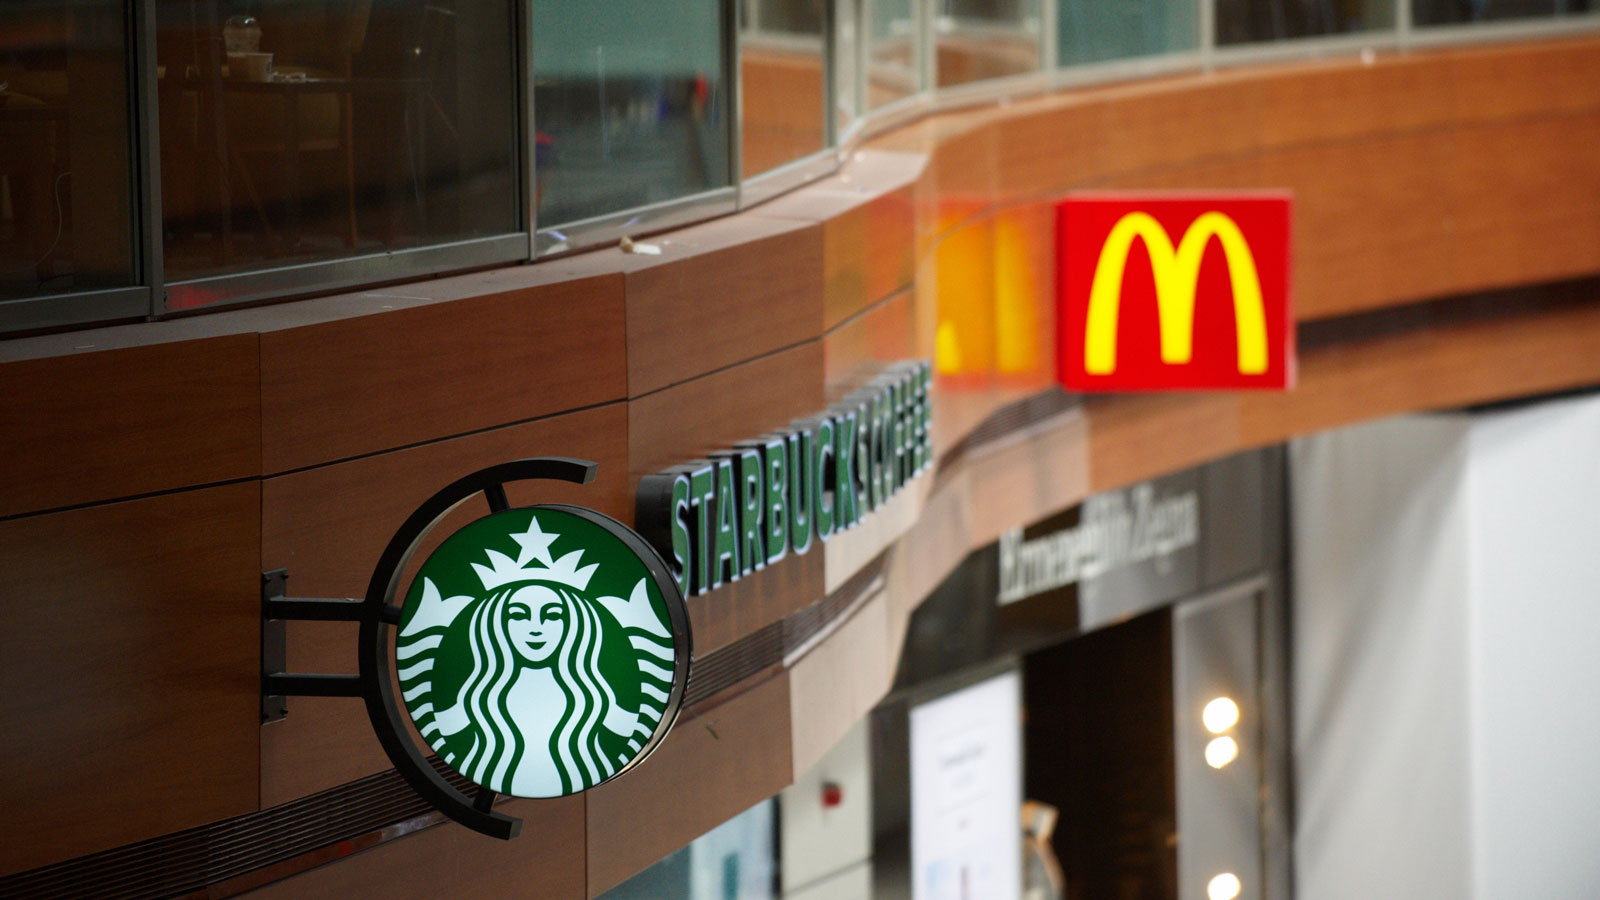 mcdonalds-return-customers-starbucks-FT-BLOG0717.jpg